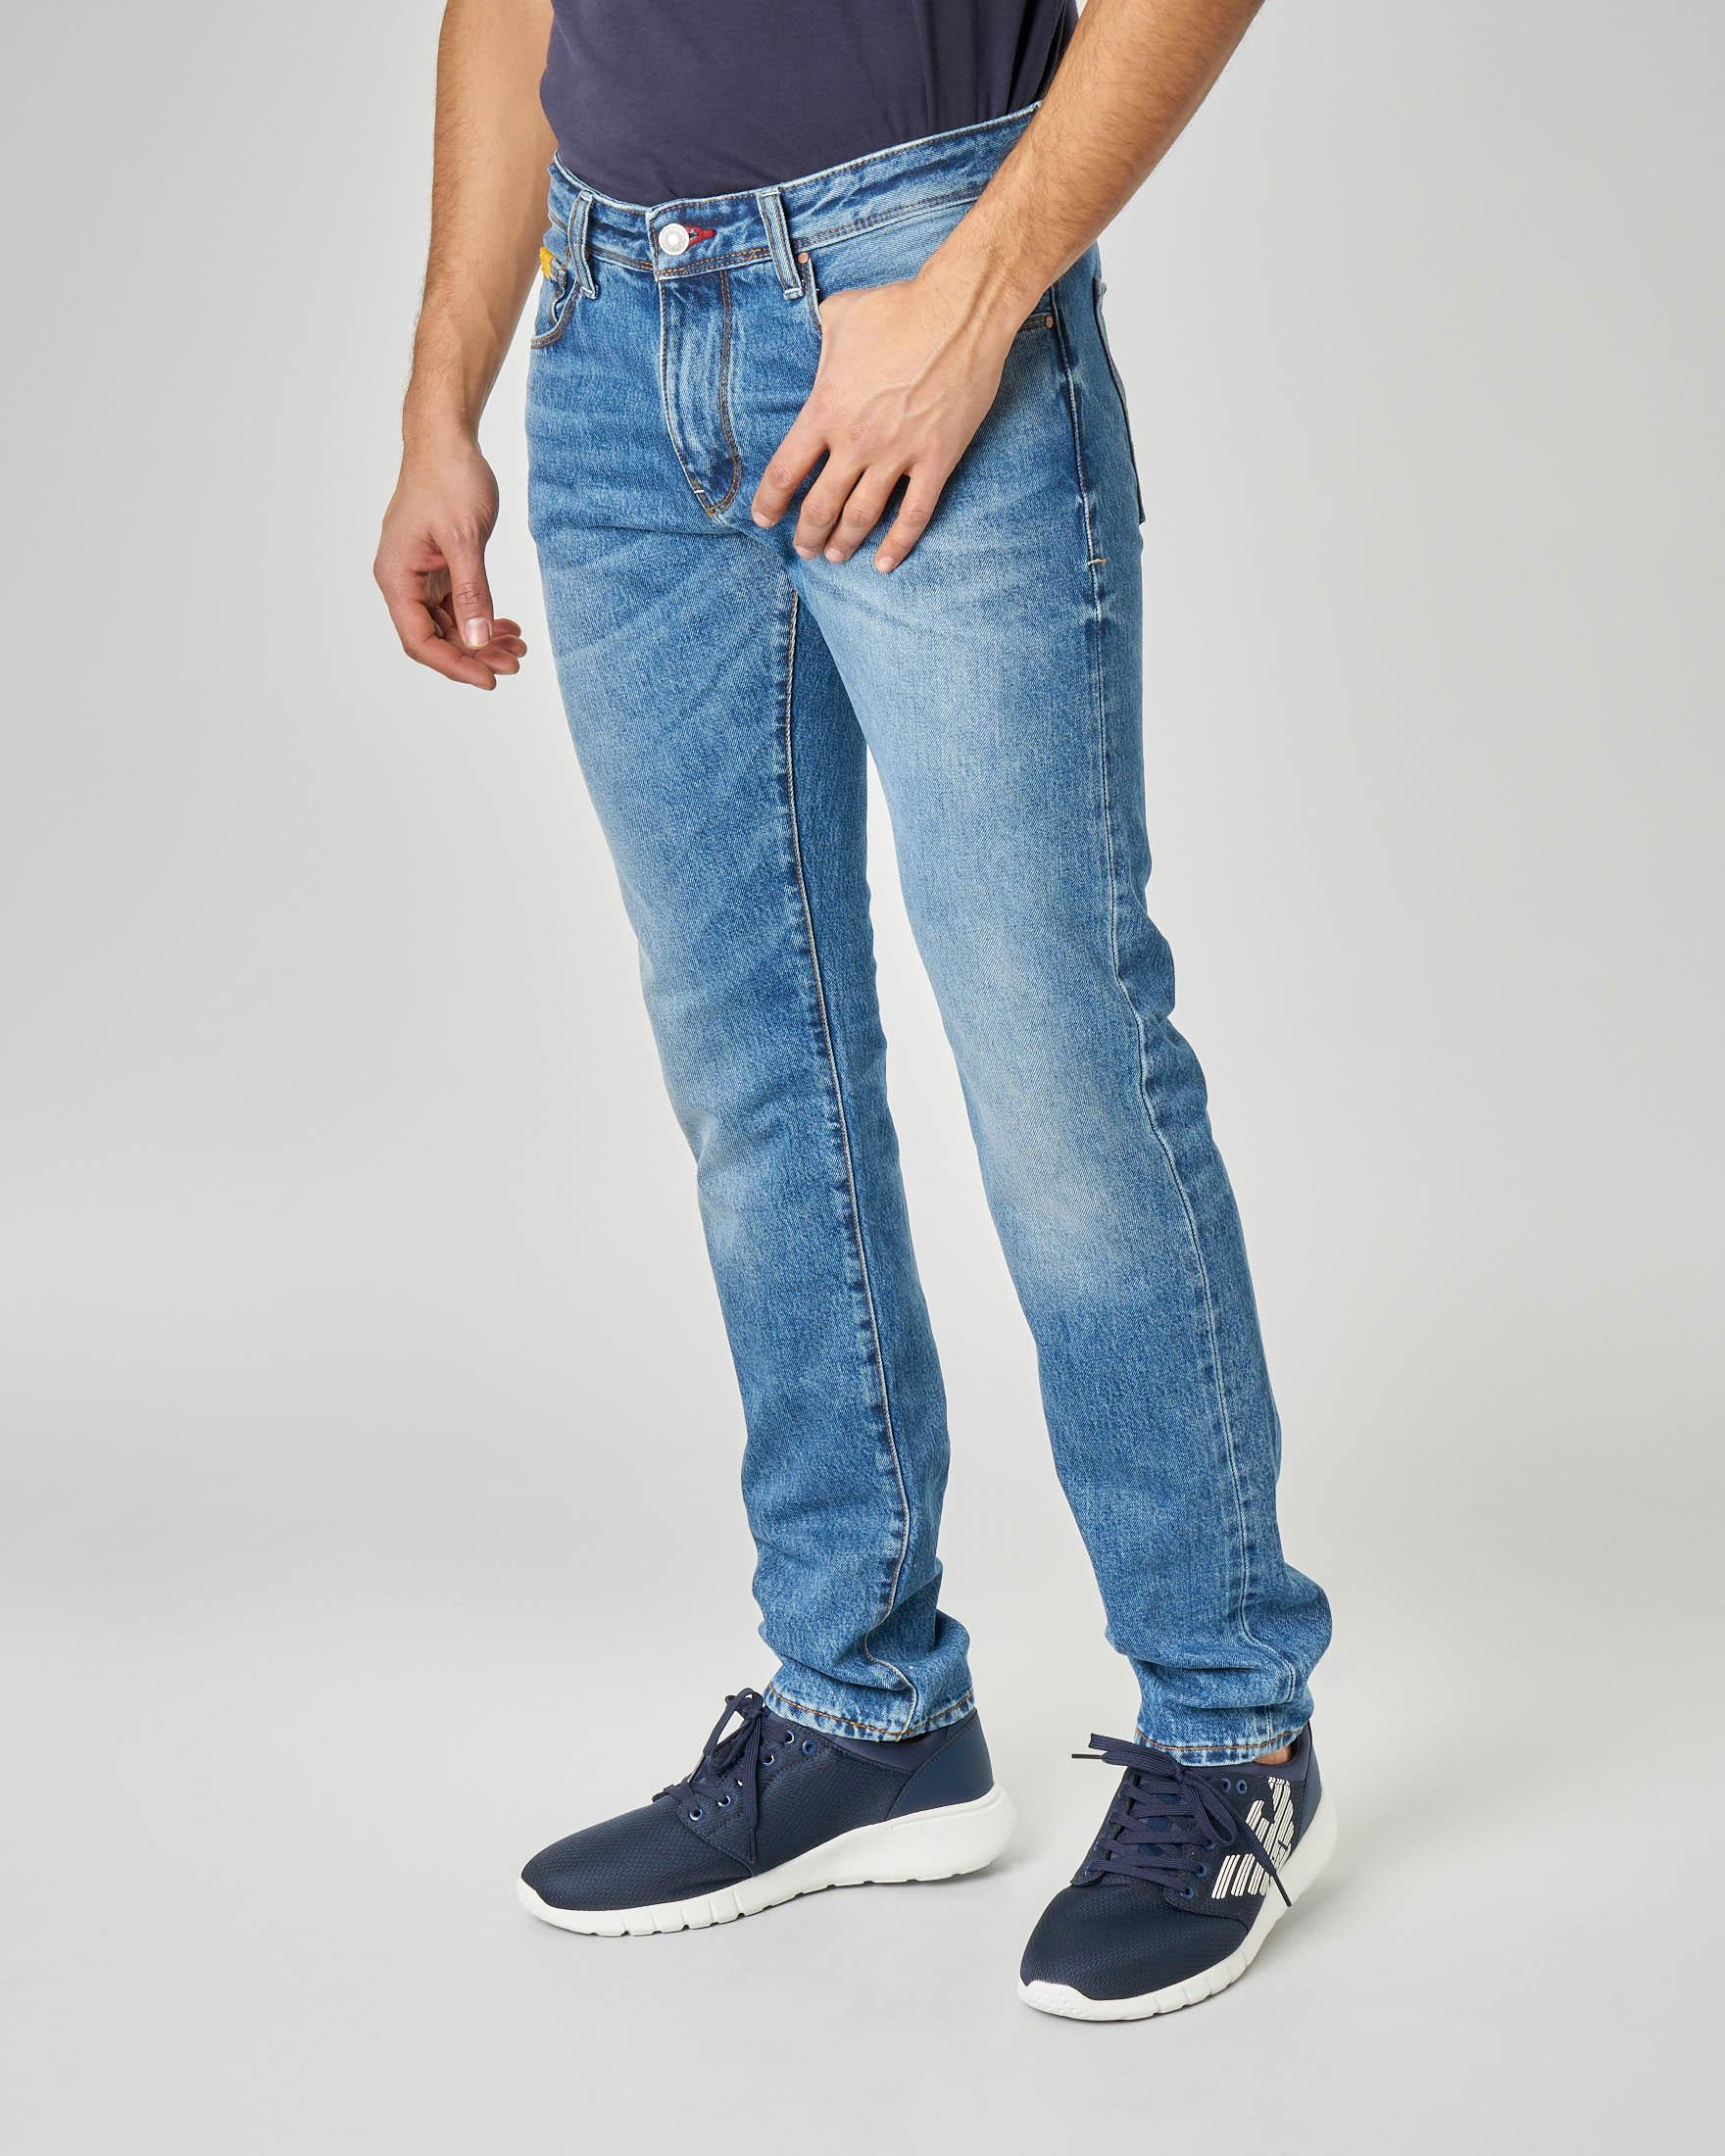 Jeans J13 lavaggio super stone wash slim fit